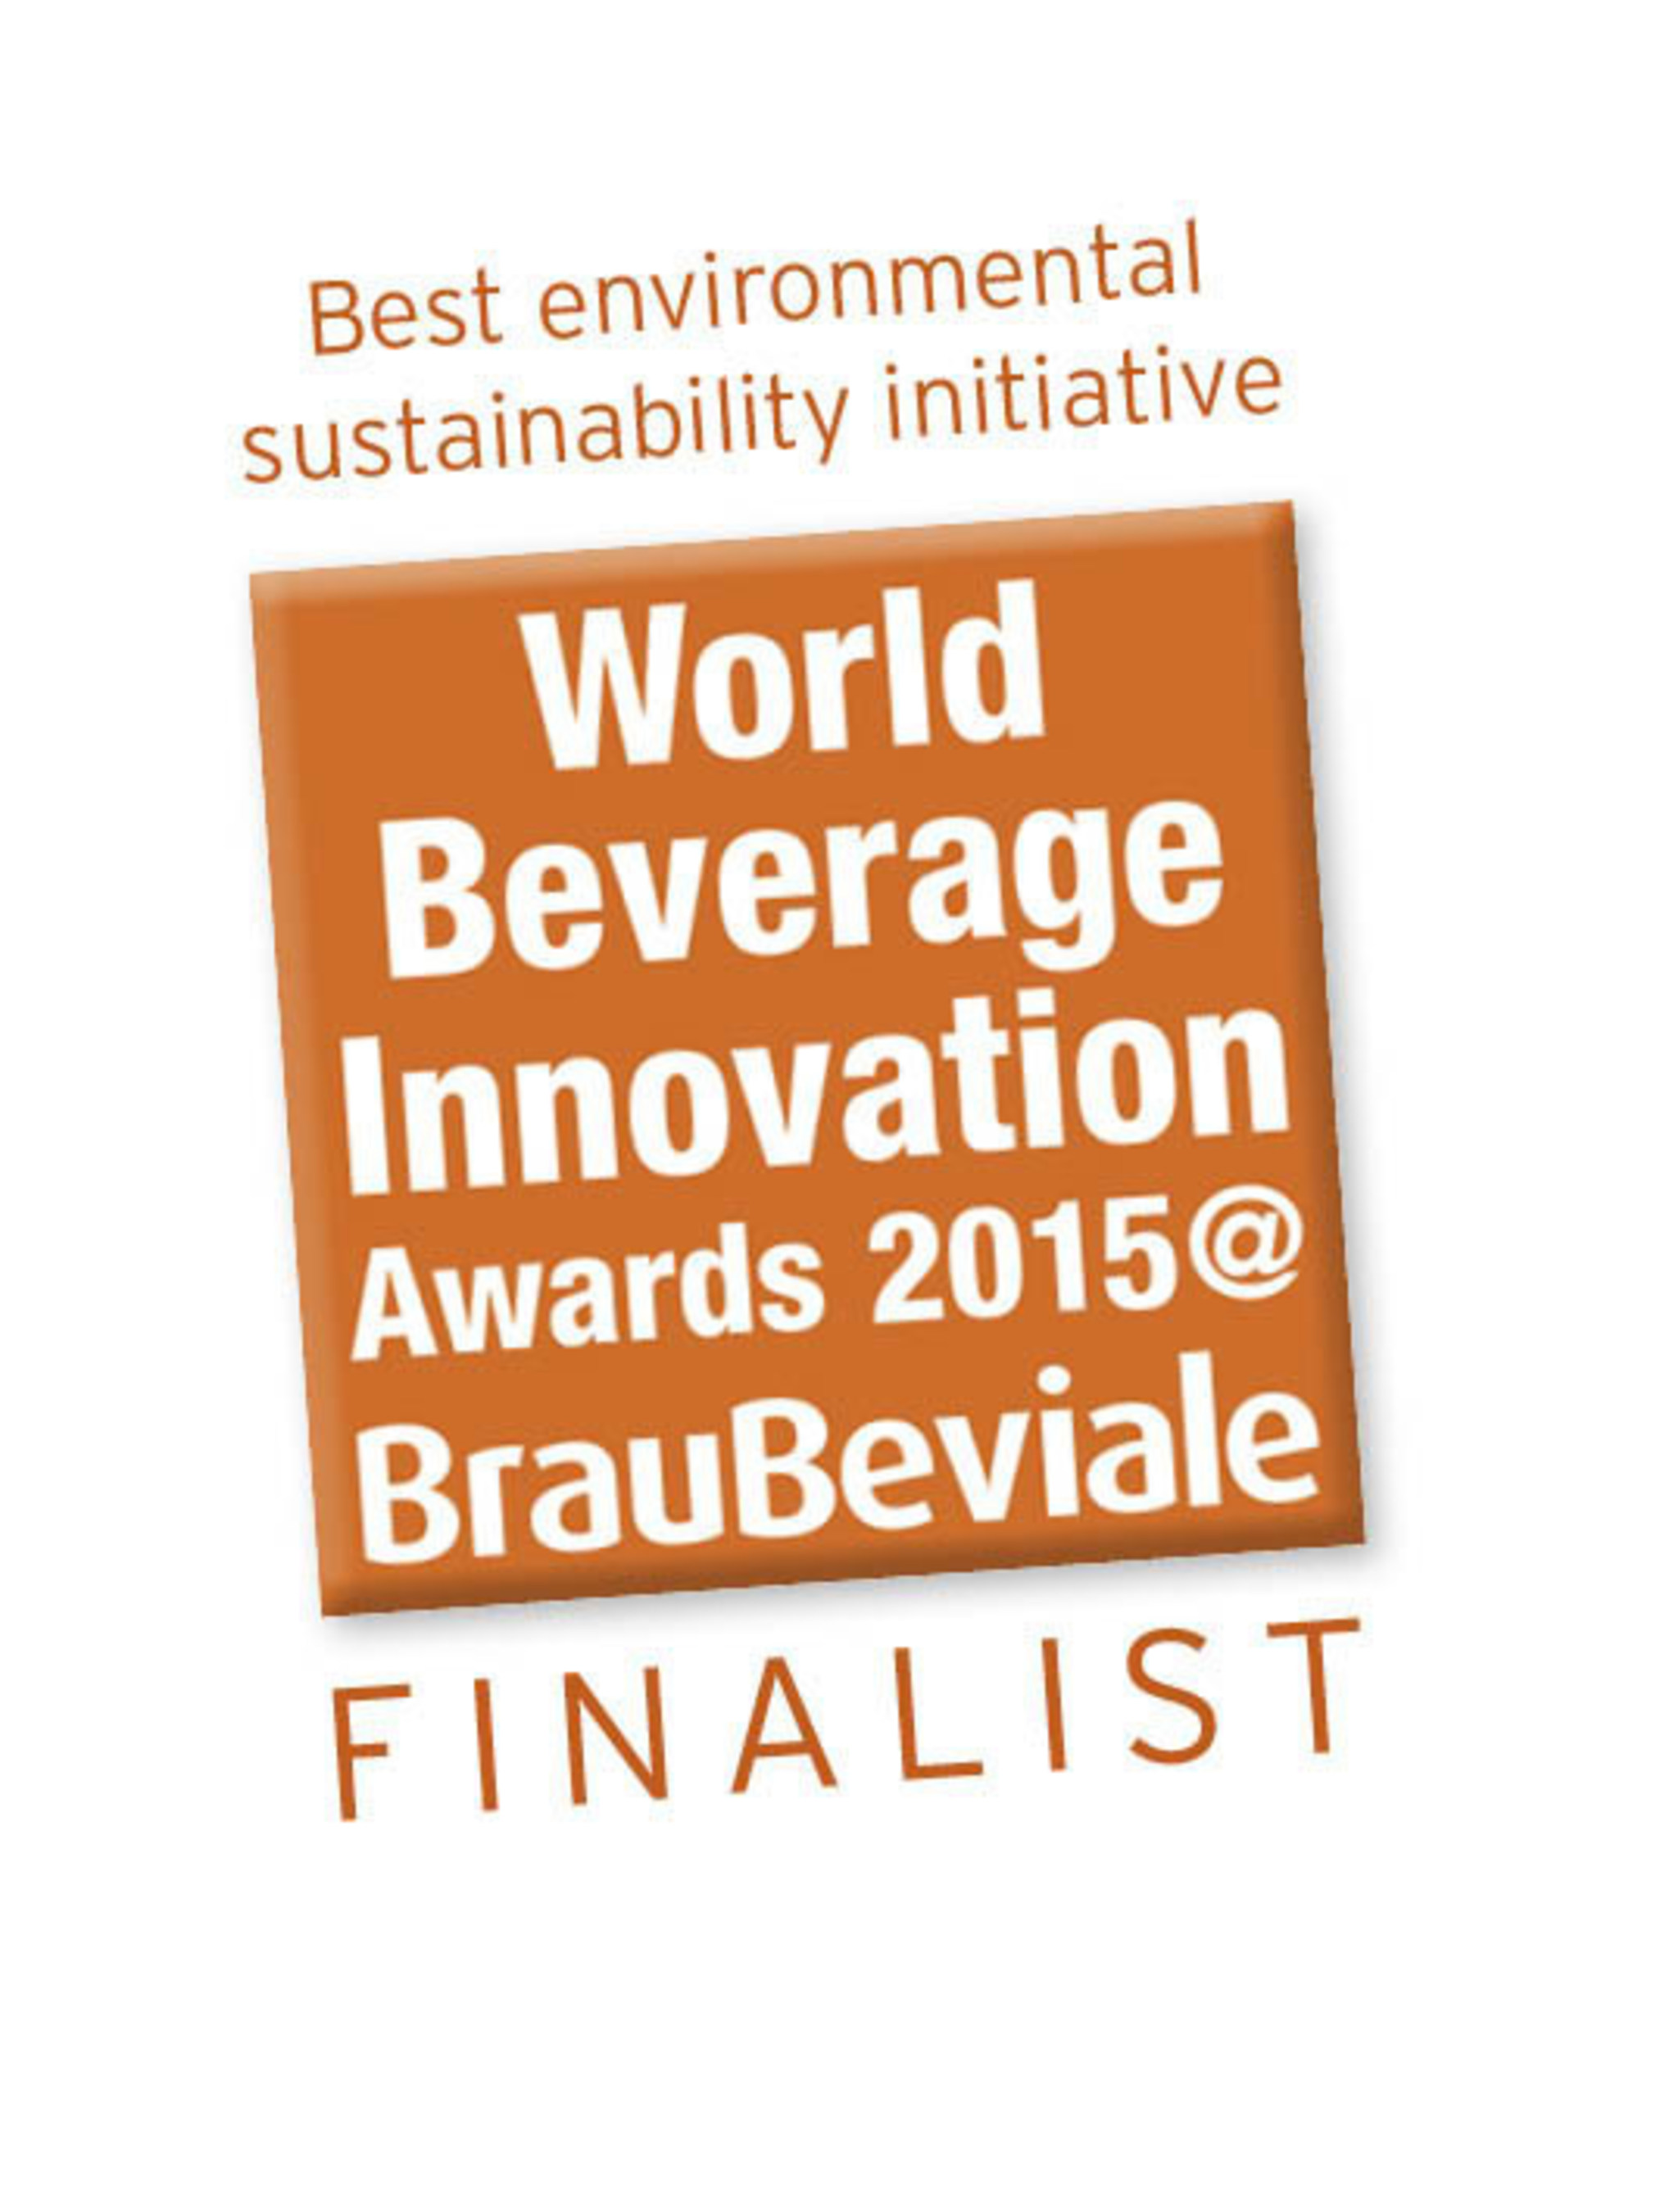 White Coffee's packaging innovation, BioCup, was honored last month as a finalist in the 2015 World Beverage Innovation Awards for the Best Environmental Sustainability Initiative category.